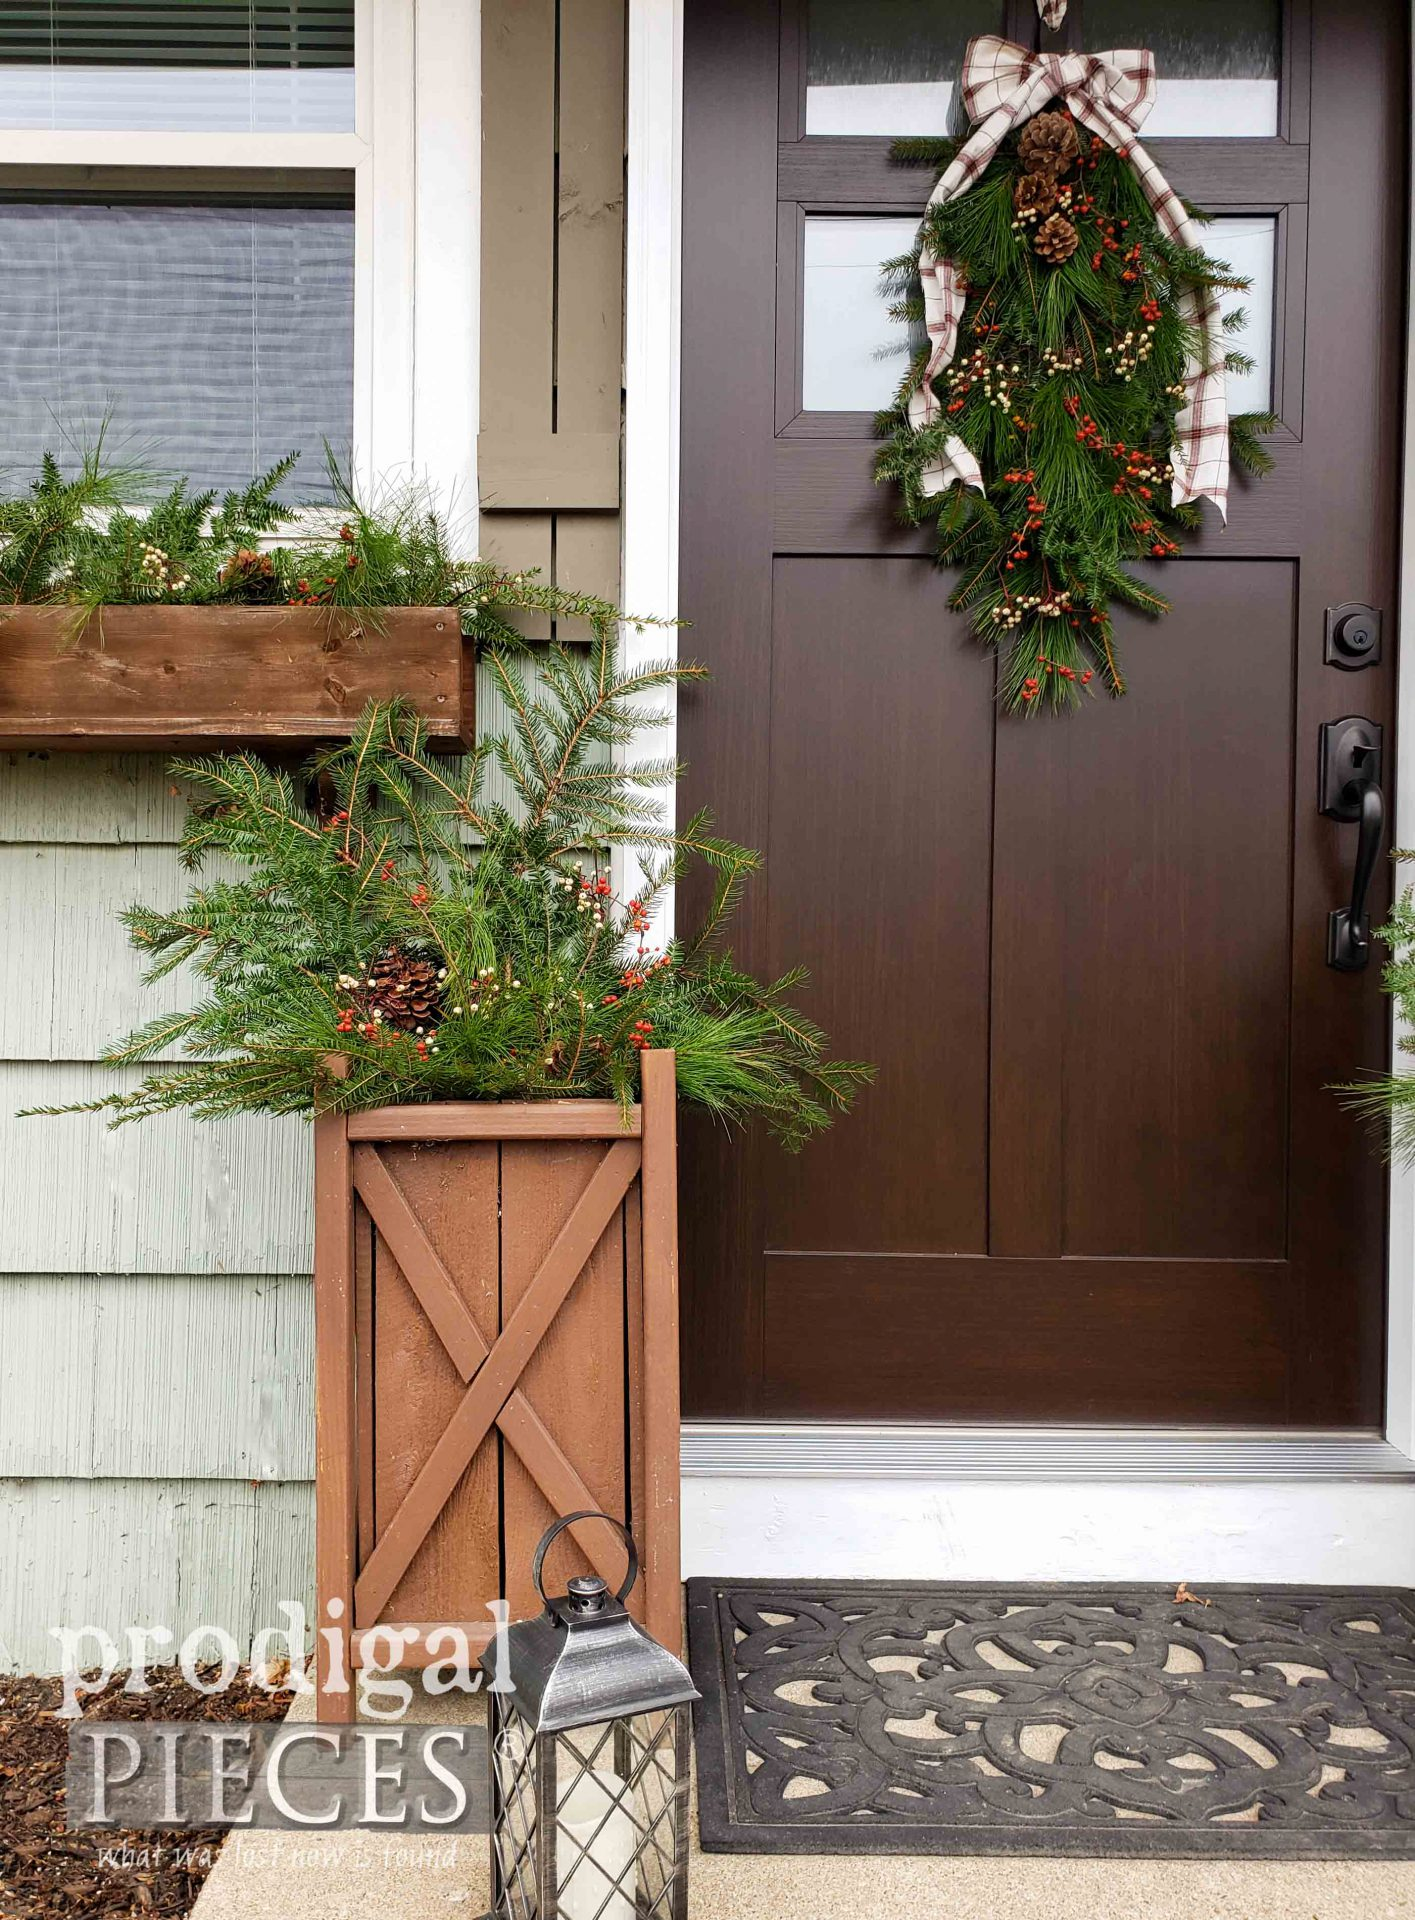 DIY Foraged Fresh Planter for Christmas Decor by Larissa of Prodigal Pieces | prodigalpieces.com #prodigalpieces #diy #home #christmas #homedecor #holiday #nordic